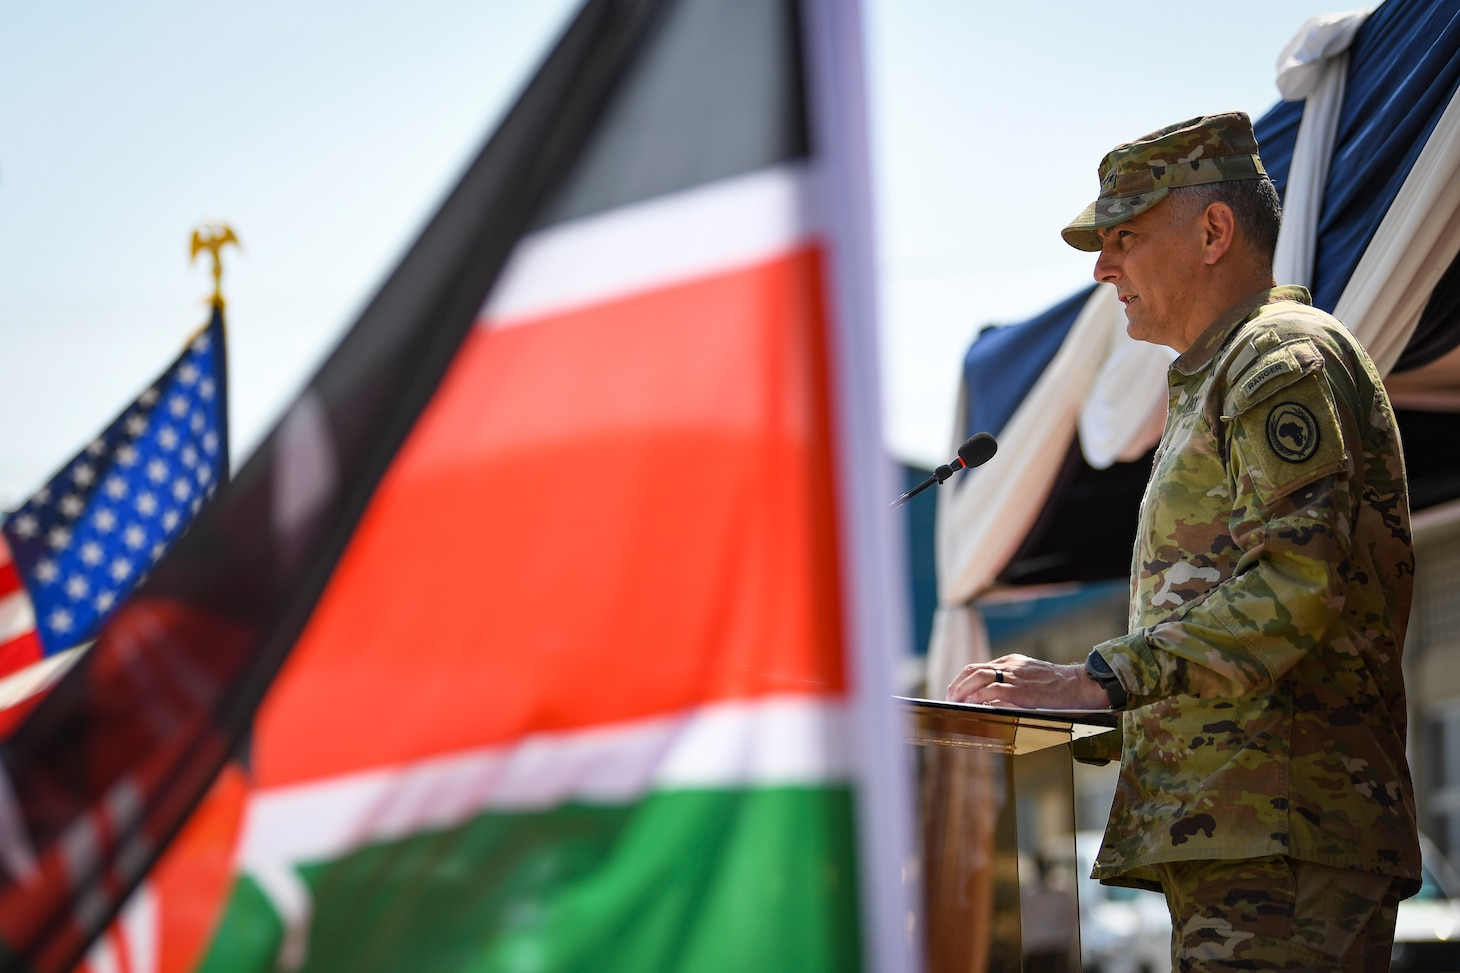 (July 26, 2021) Gen. Stephen Townsend, commander, U.S. Africa Command, delivers remarks during the opening ceremony of exercise Cutlass Express 2021 held at the Bandari Maritime Academy in Mombasa, Kenya, July 26, 2021. Cutlass Express is designed to improve regional cooperation, maritime domain awareness and information sharing practices to increase capabilities between the U.S., East African and Western Indian Ocean nations to counter illicit maritime activity.